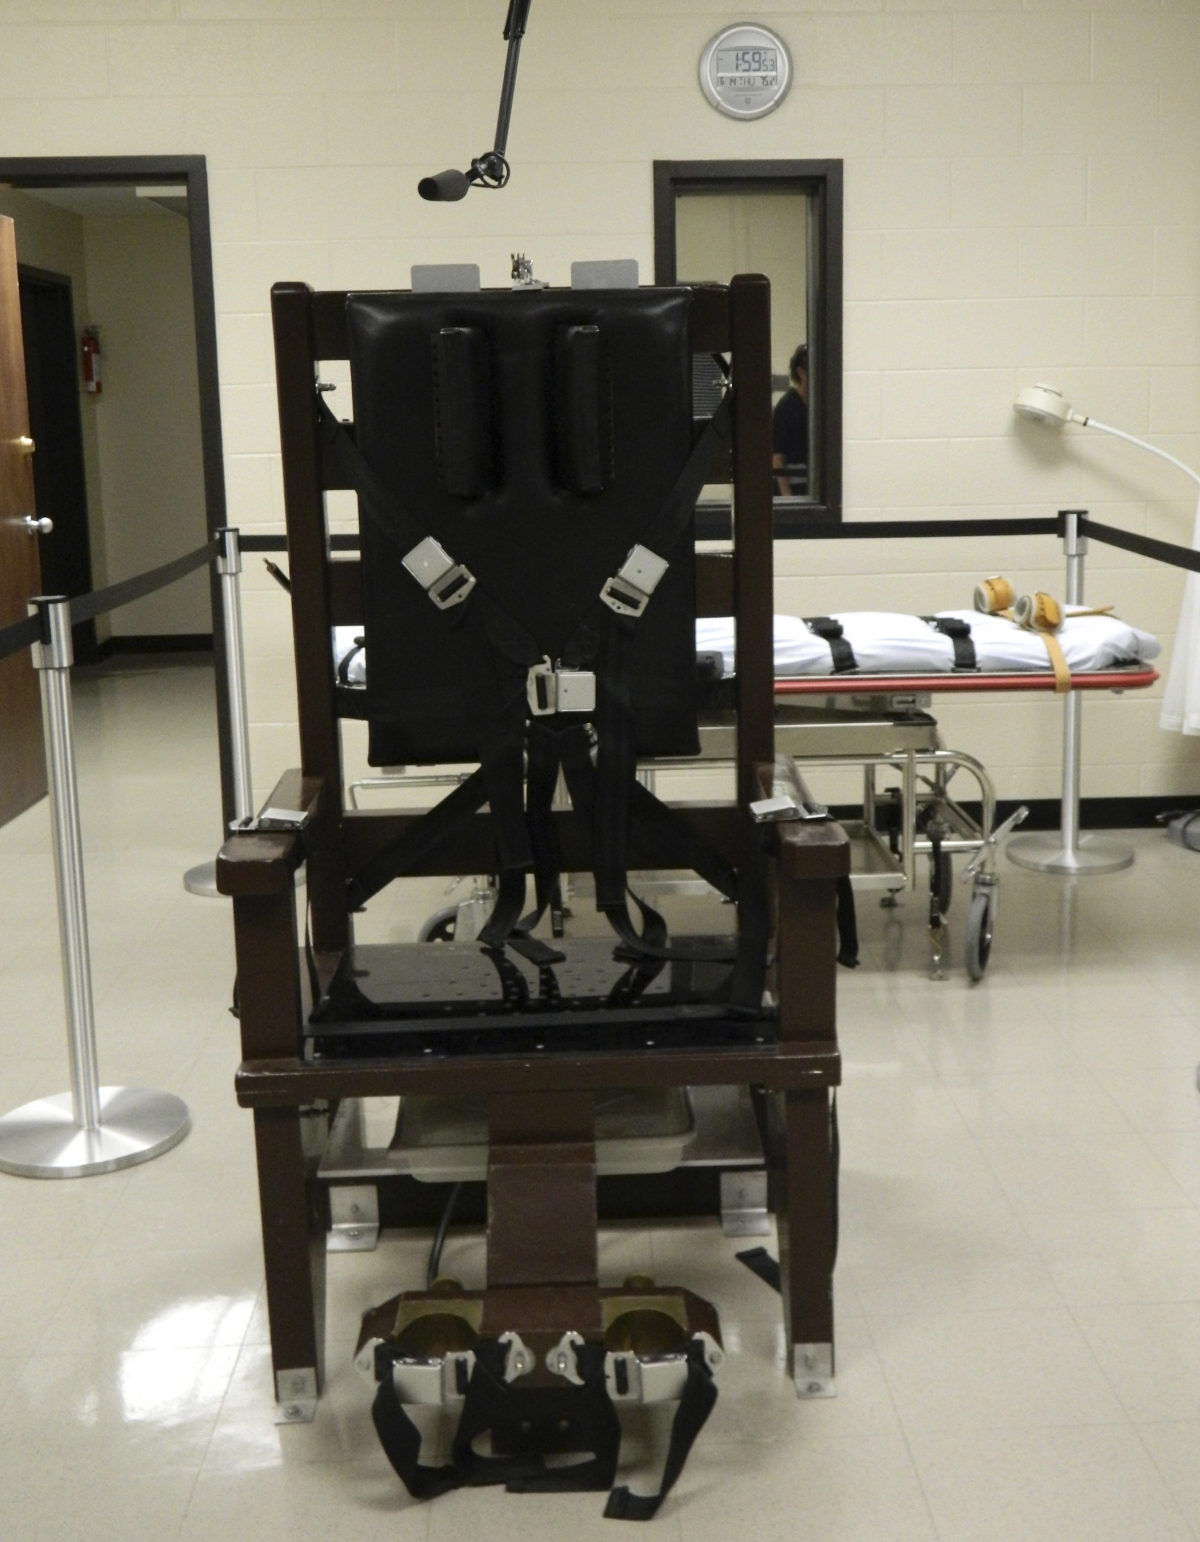 Tennessee's electric chair, last used in 2007, is now an option for executions in the state if lethal injection drugs are unavailable